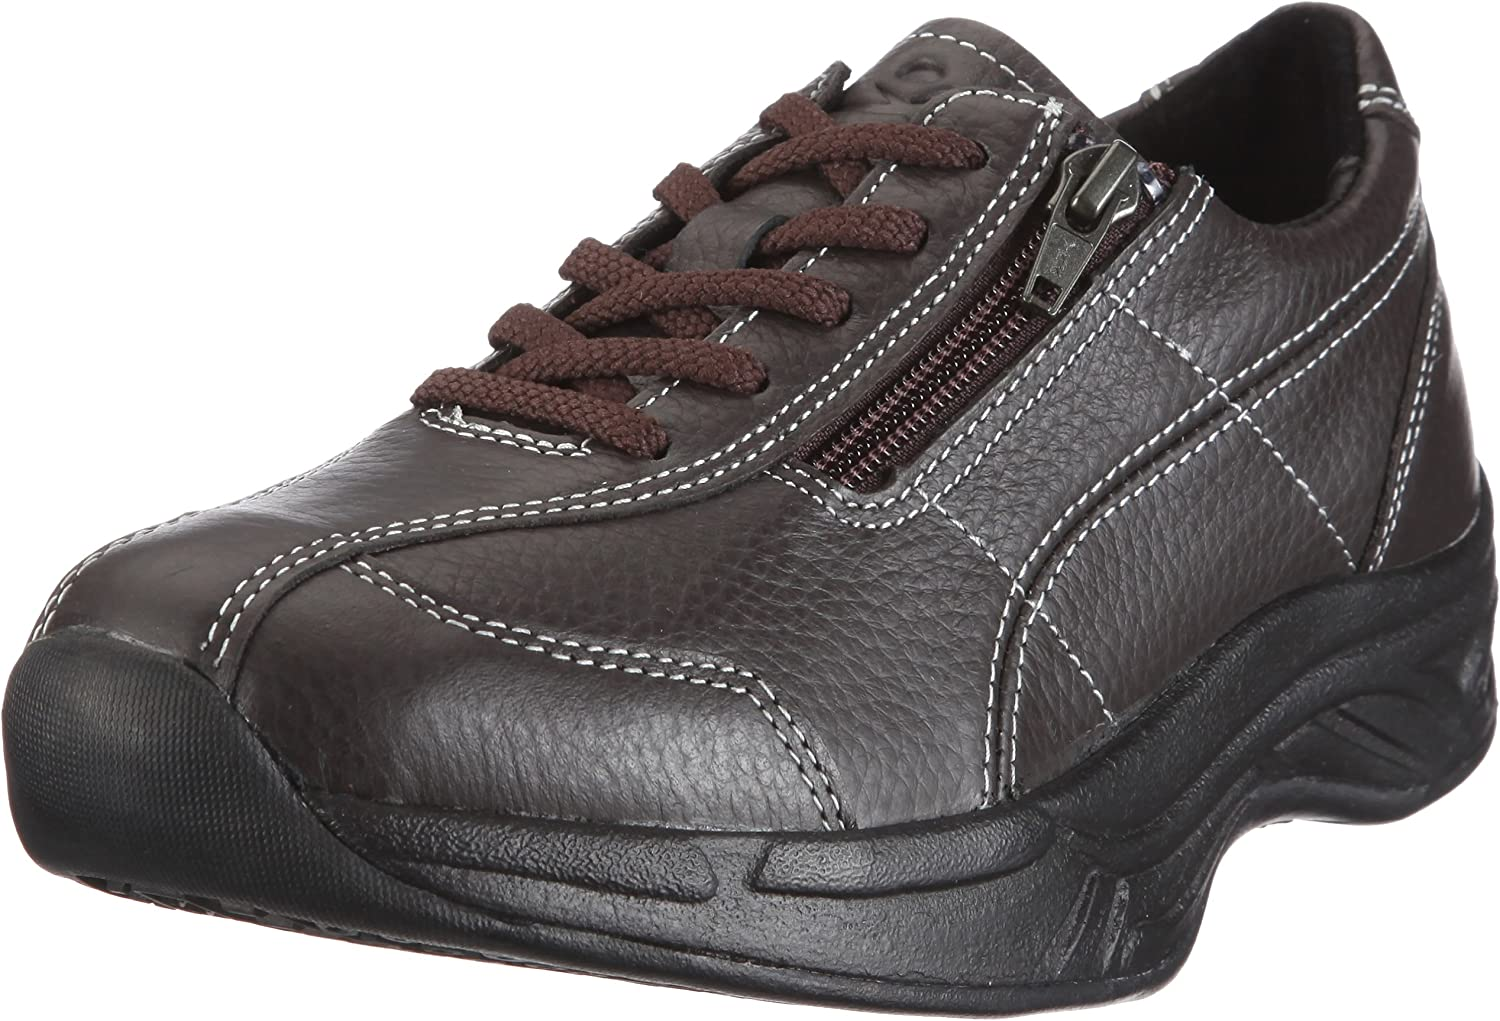 Chung -Shi Unisex Danny Comfort Step Casual Lace Up